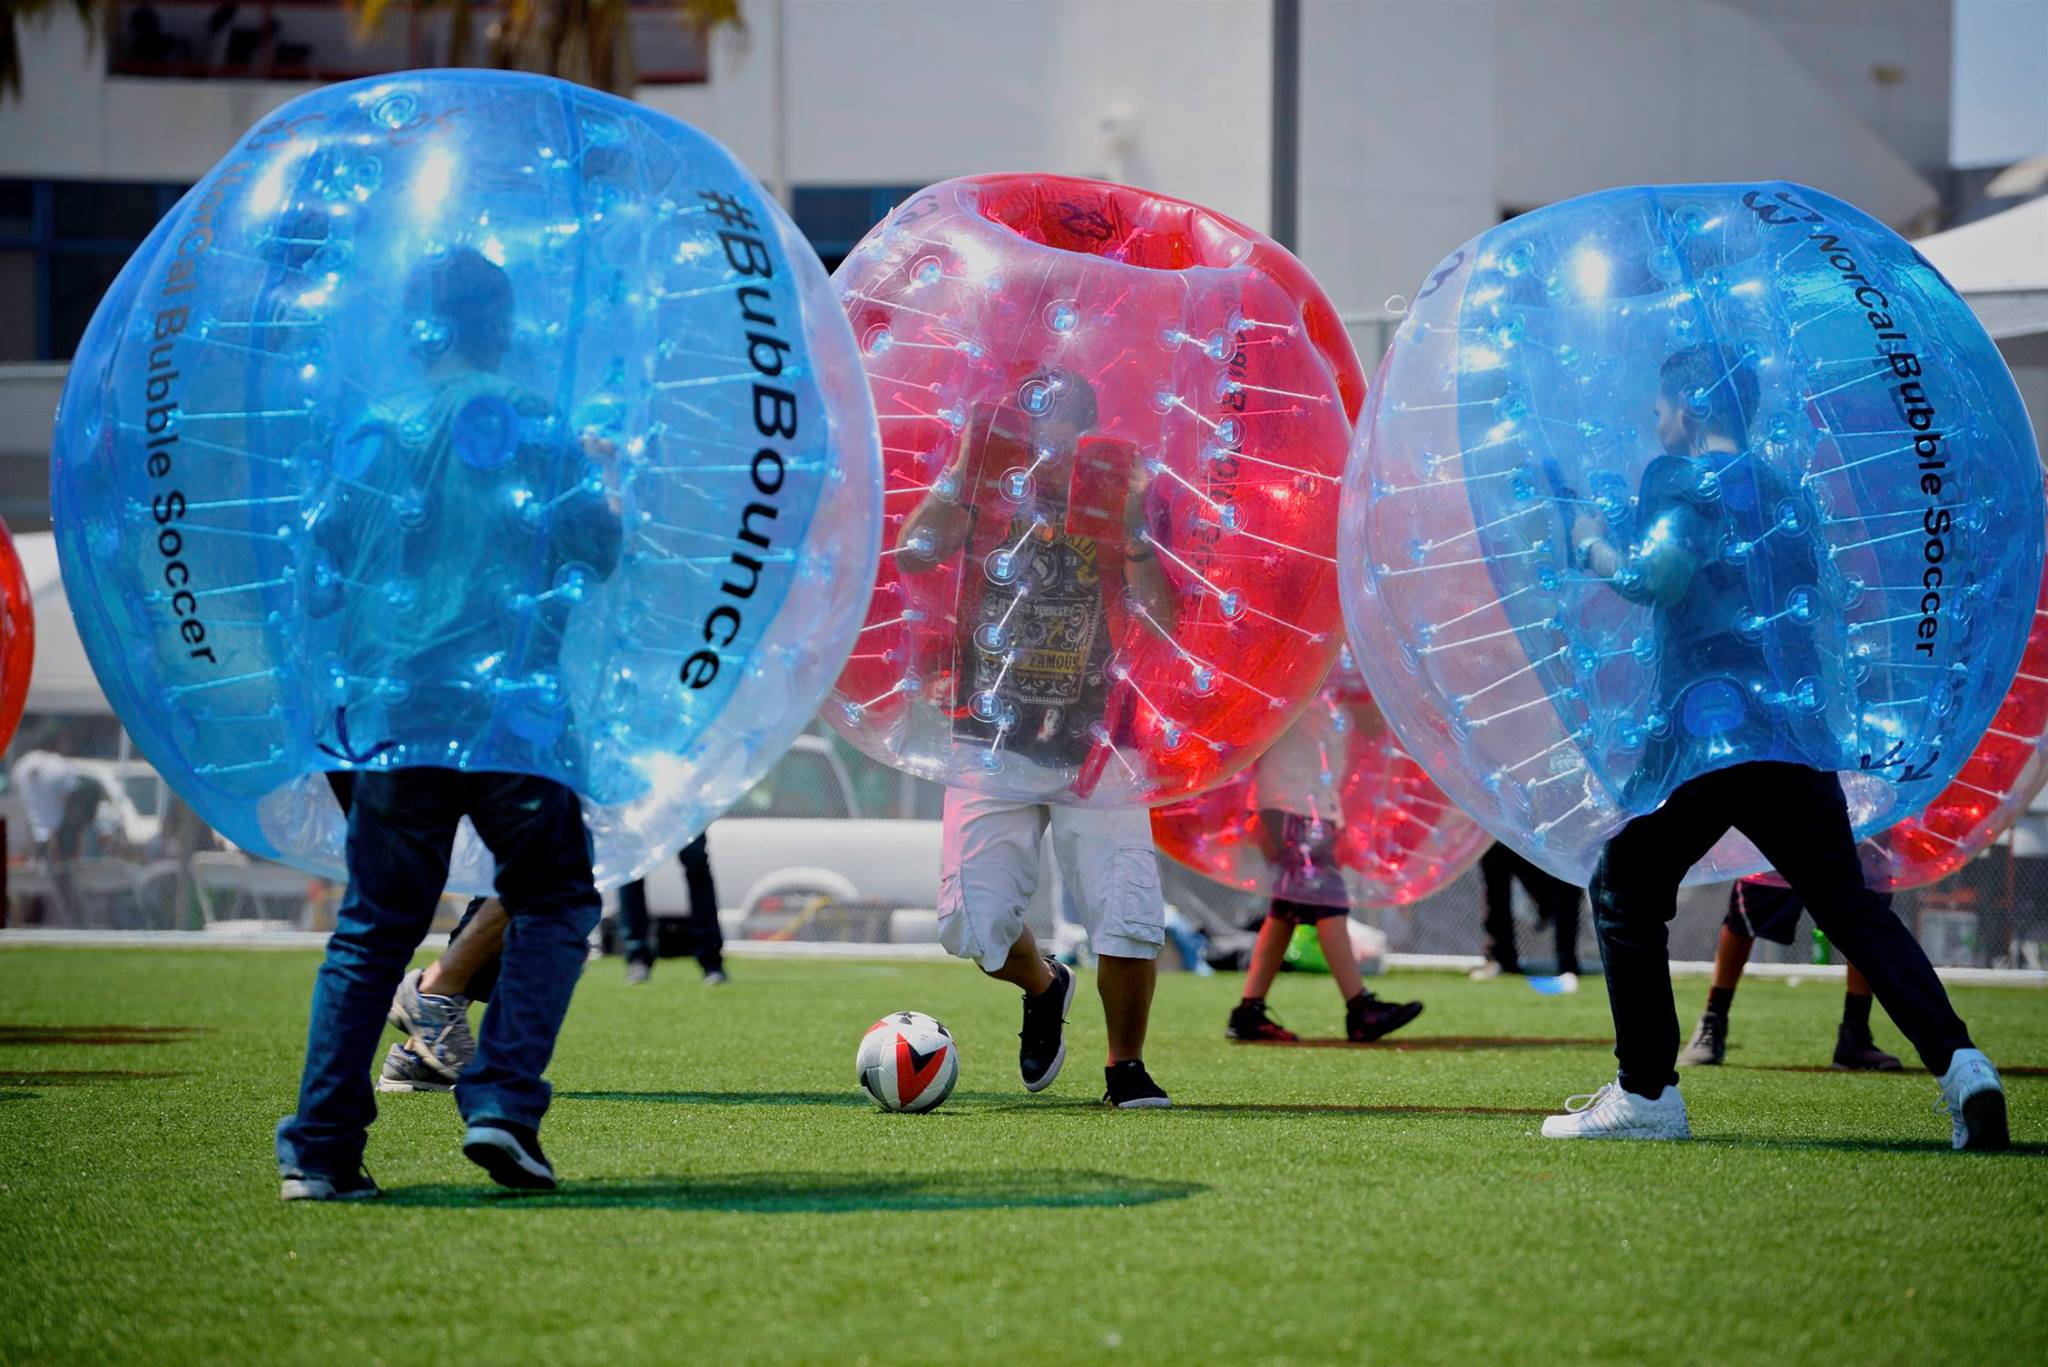 SF Events: Bubble soccer with SF Deltas